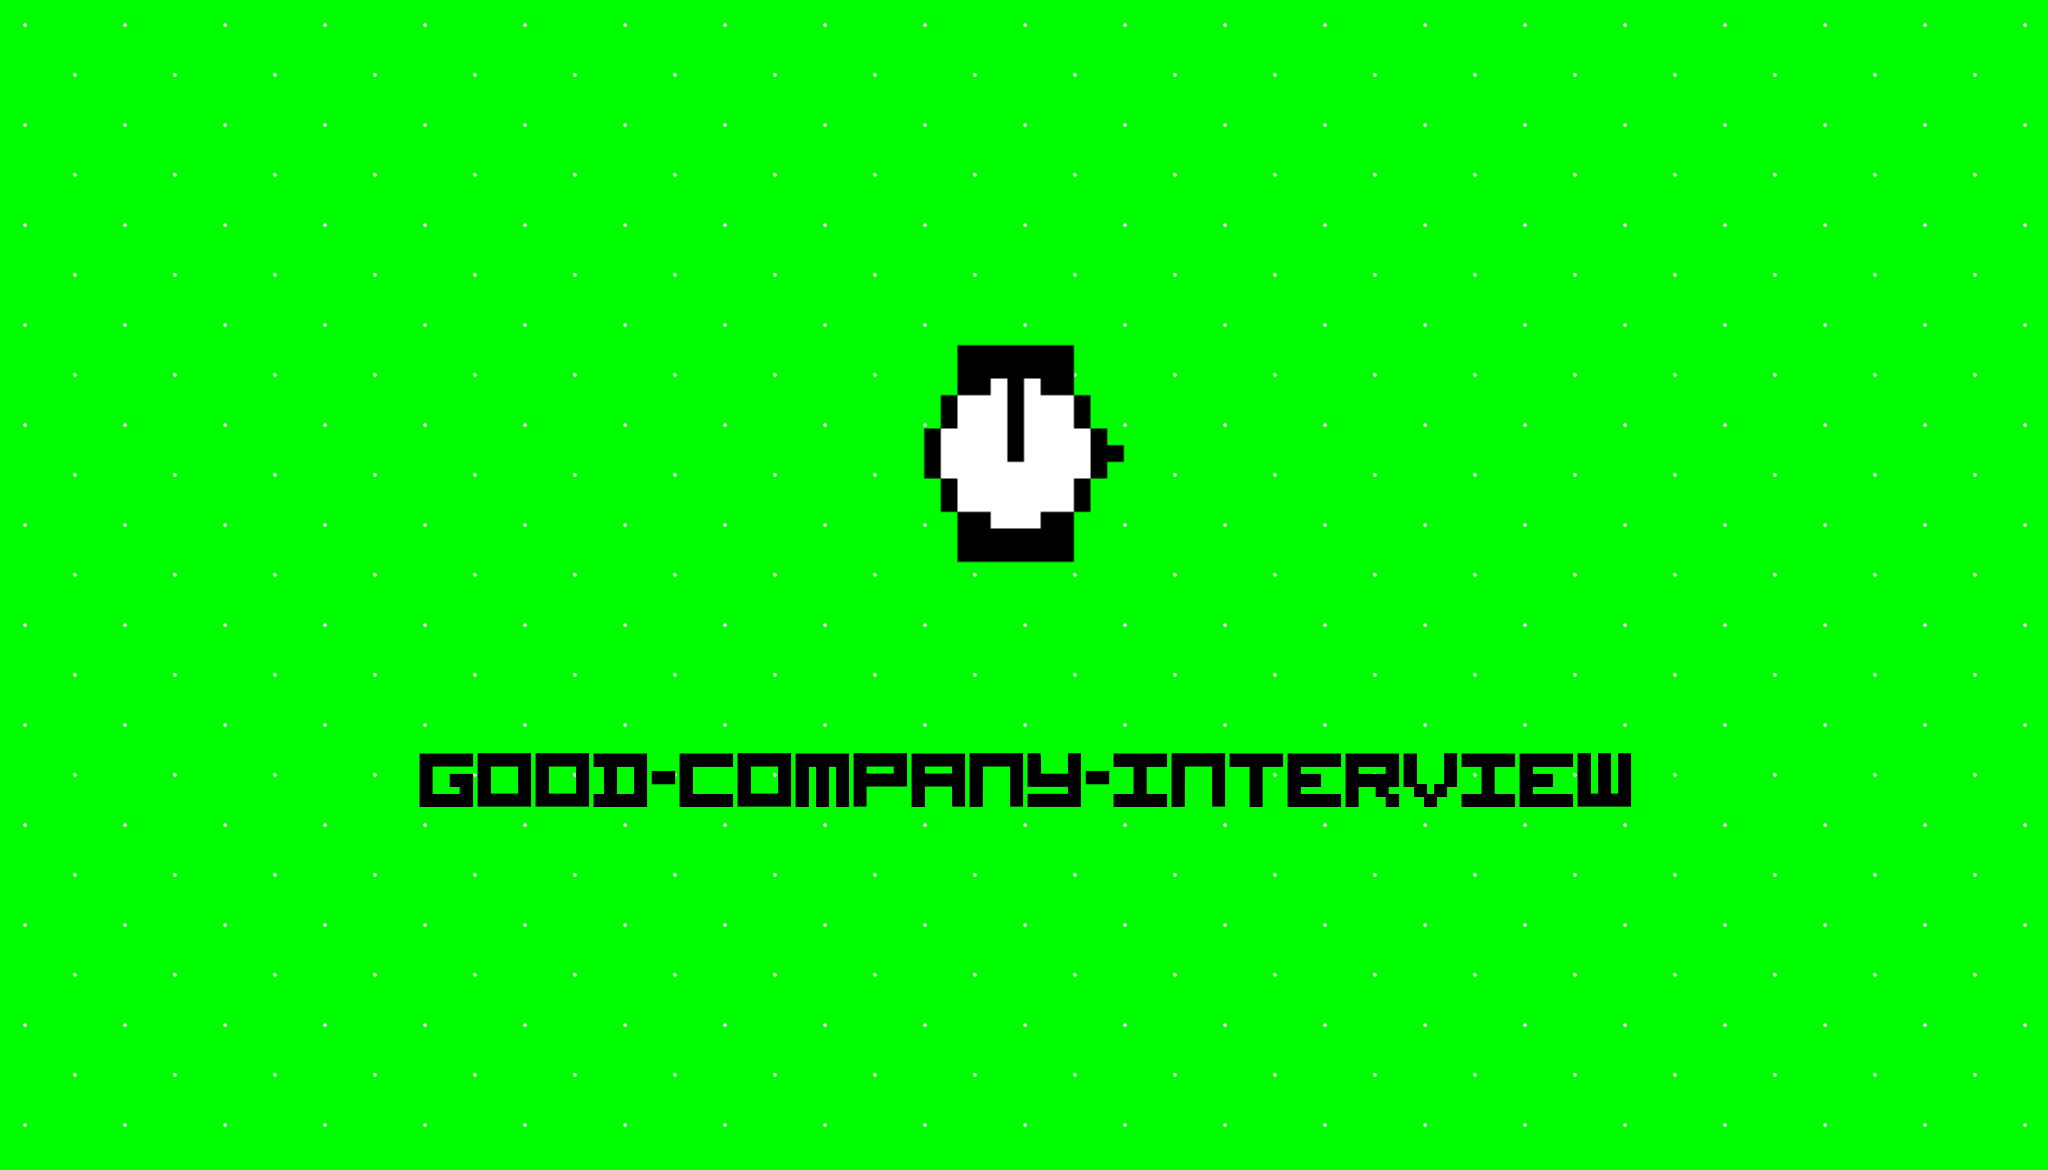 #good-company-interview stories | Hacker Noon